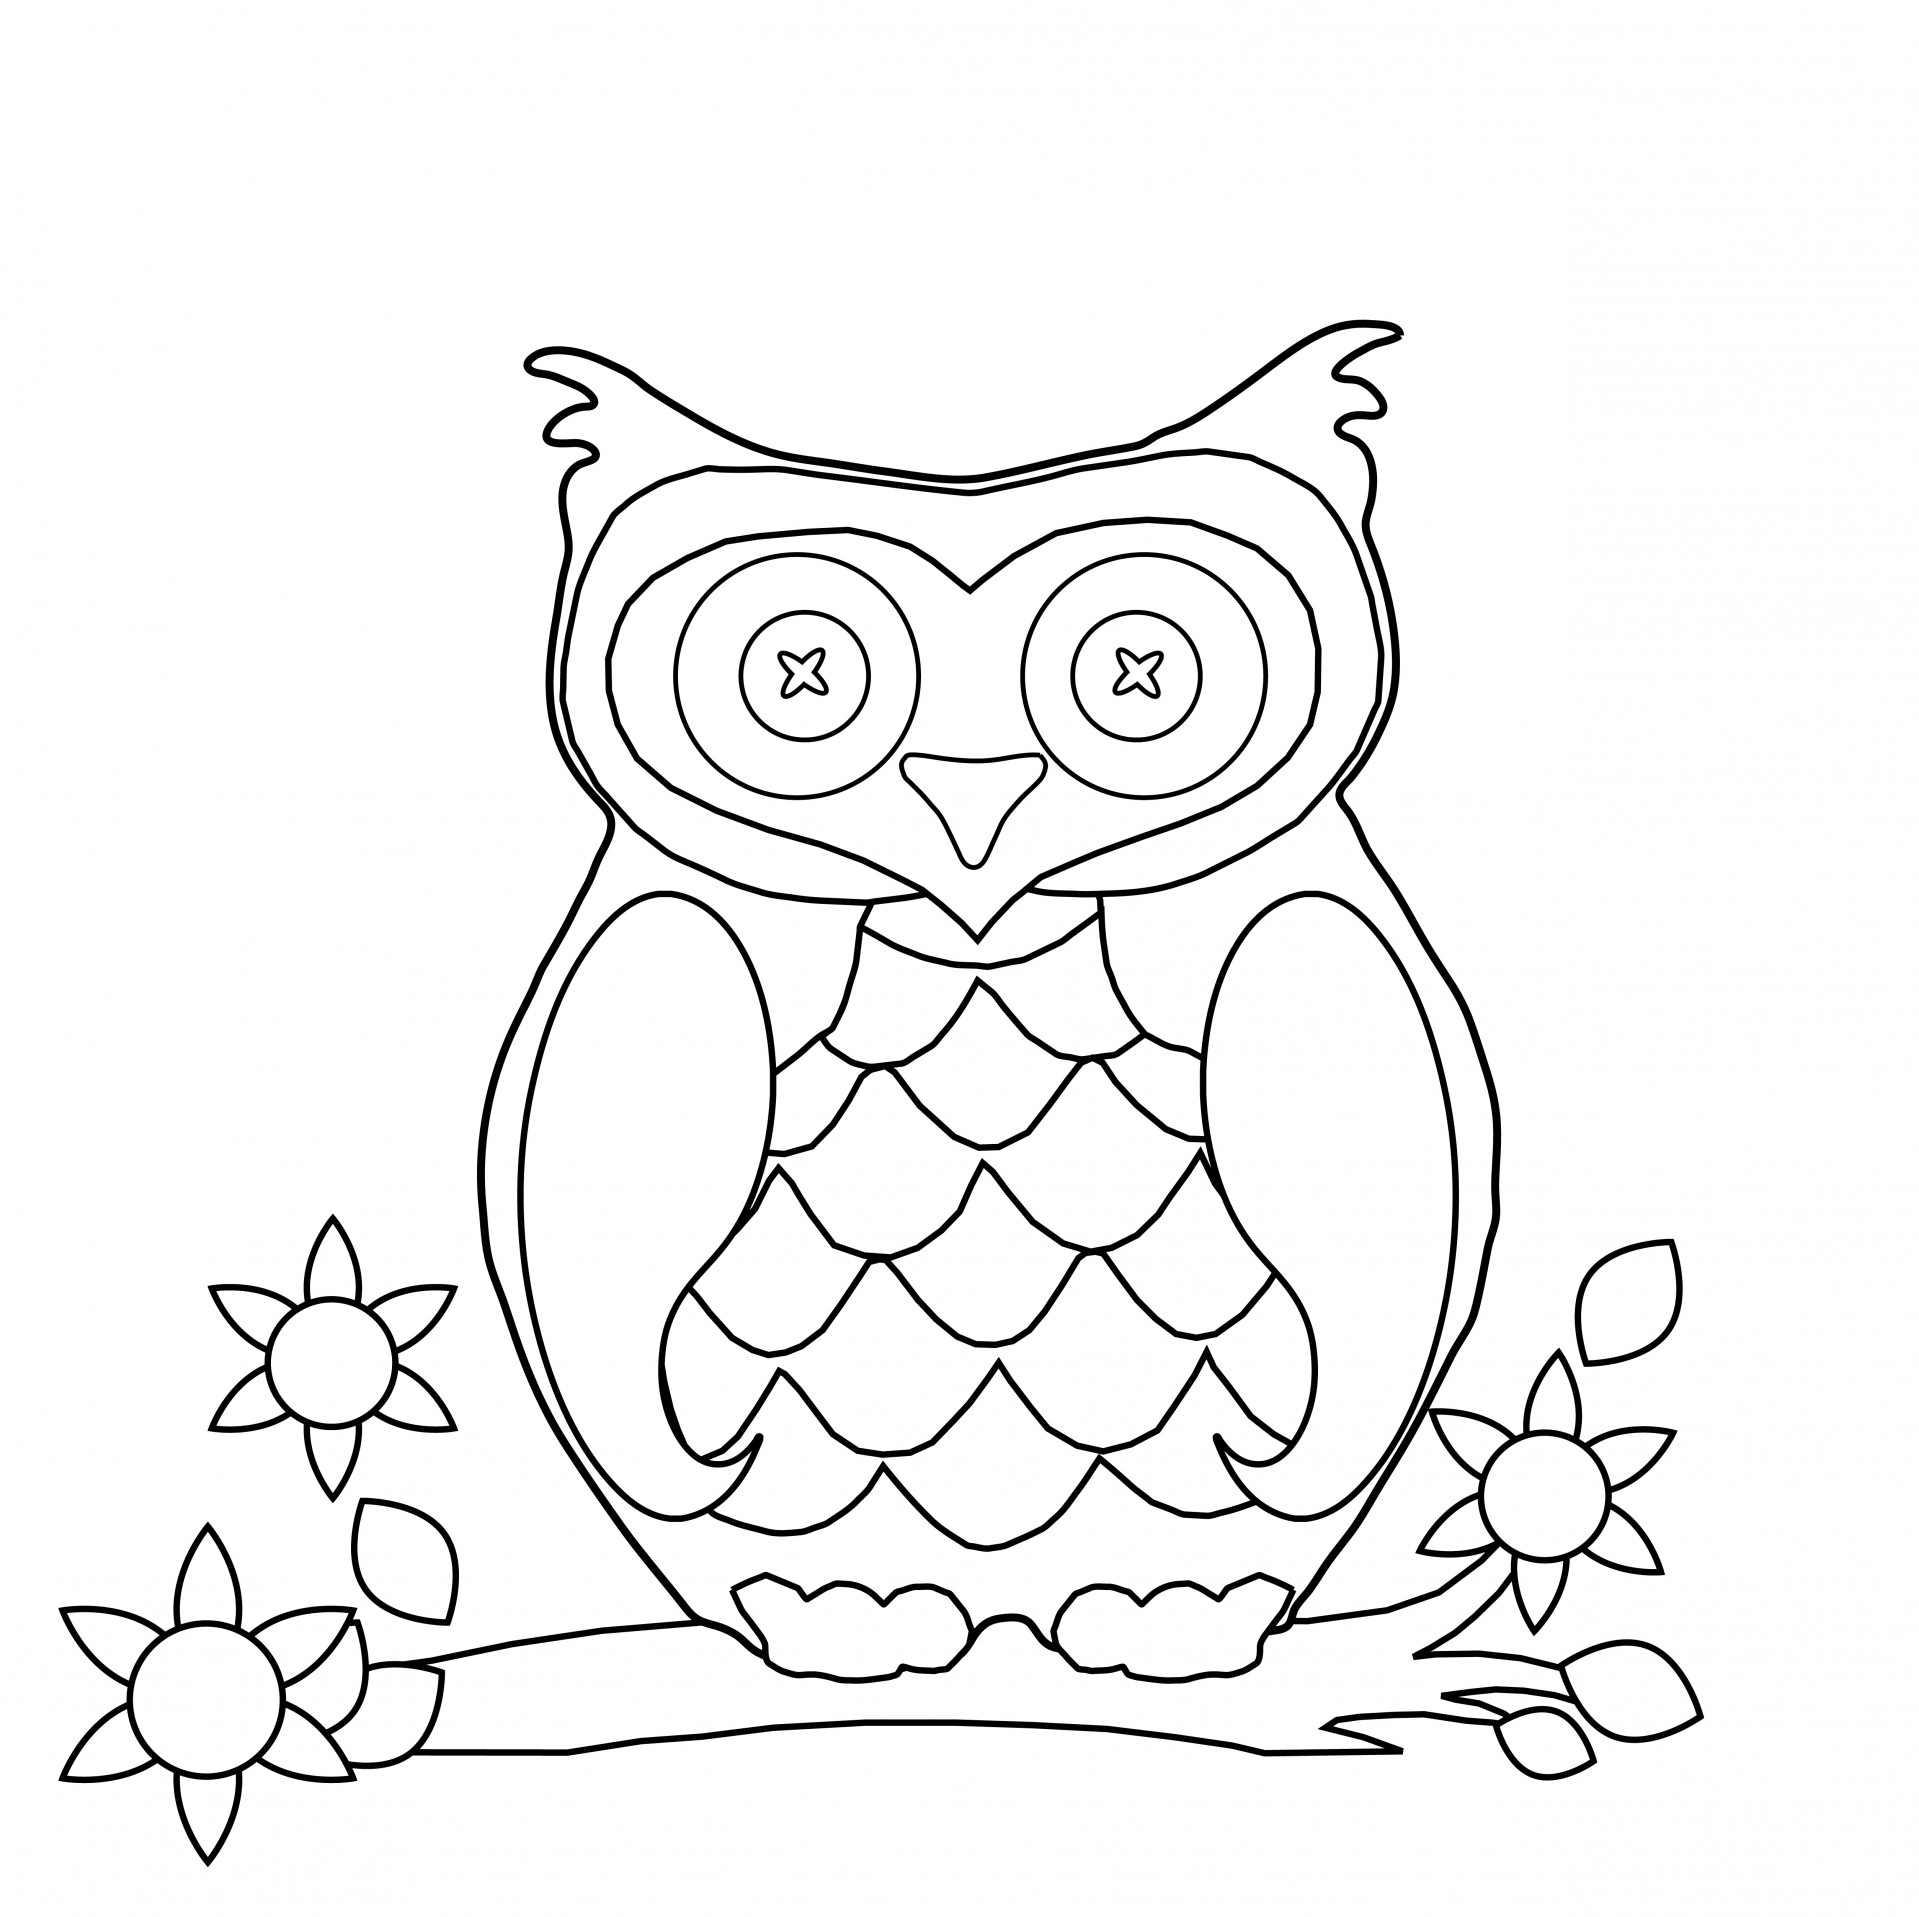 coloring pages printables disneyland coloring pages to download and print for free coloring printables pages